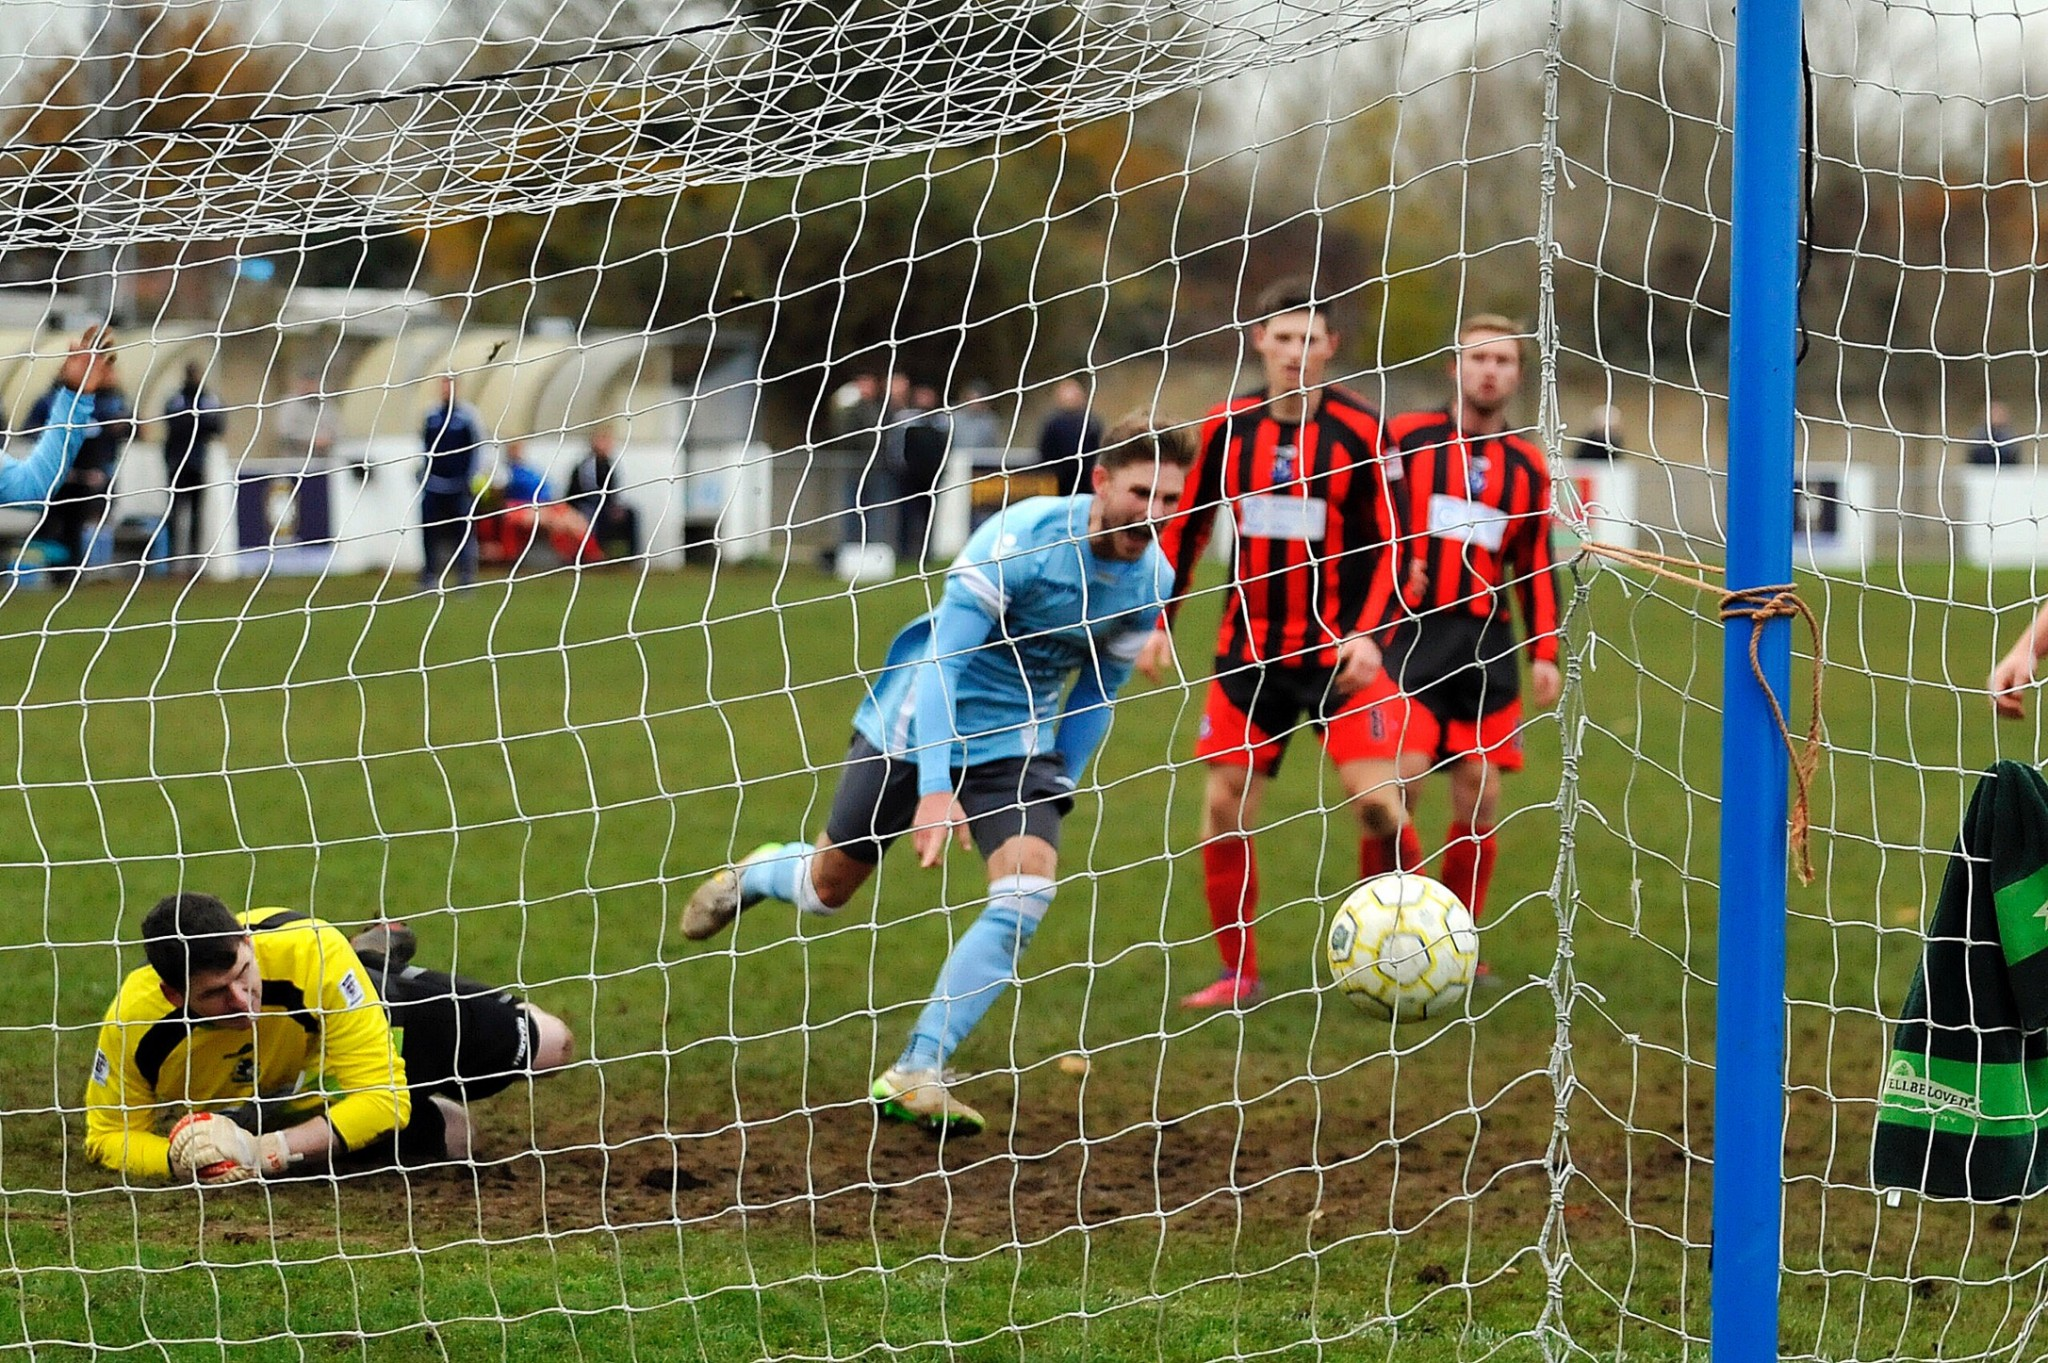 Woodley United win derby, Binfield and Wokingham & Emmbrook win on the road